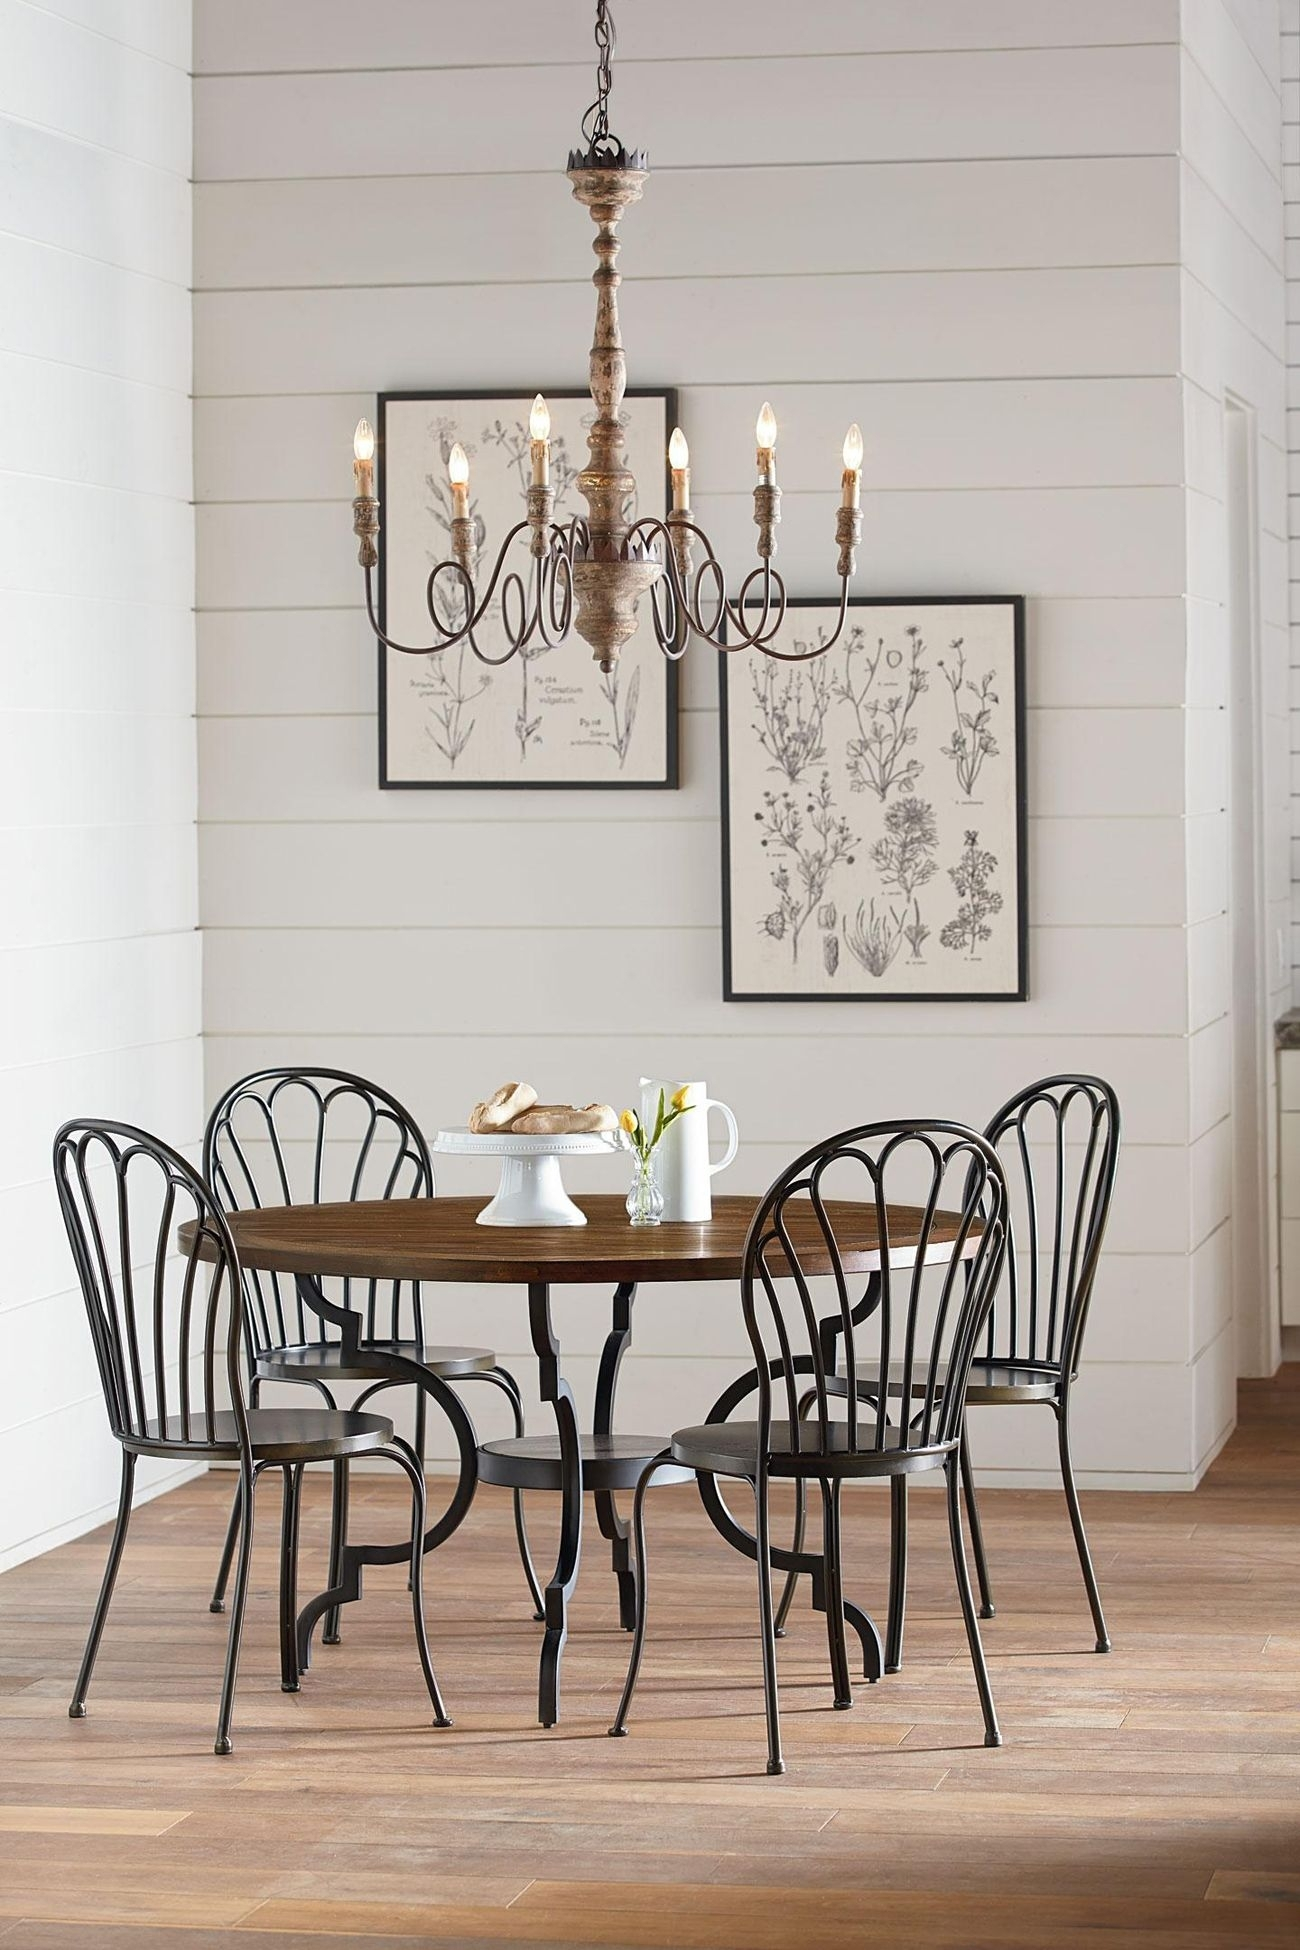 Magnolia Home French Inspired Dining Table | Magnolia Home At For Most Current Magnolia Home English Country Oval Dining Tables (Image 16 of 20)